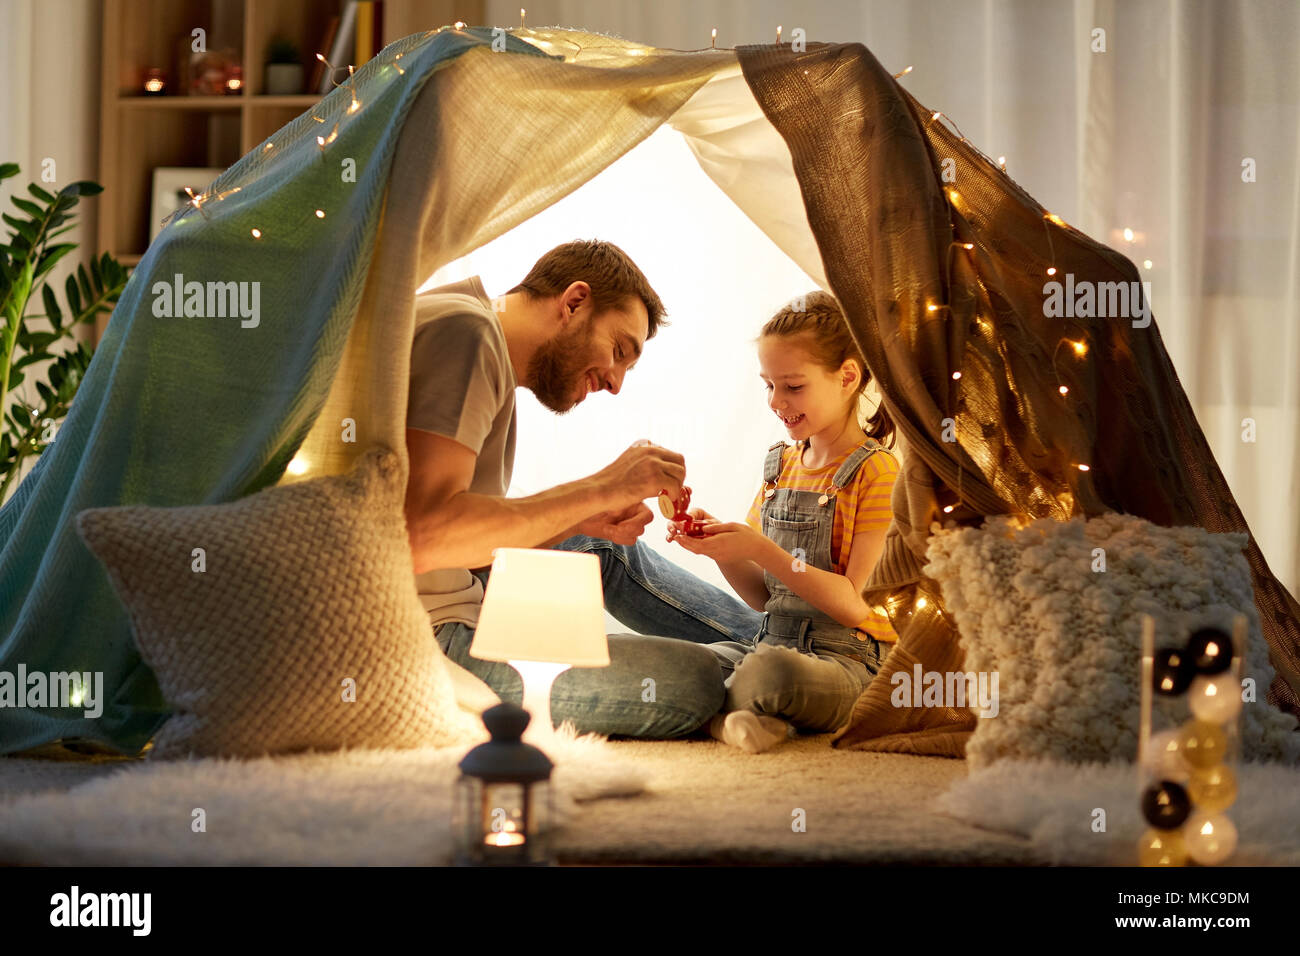 family playing tea party in kids tent at home - Stock Image